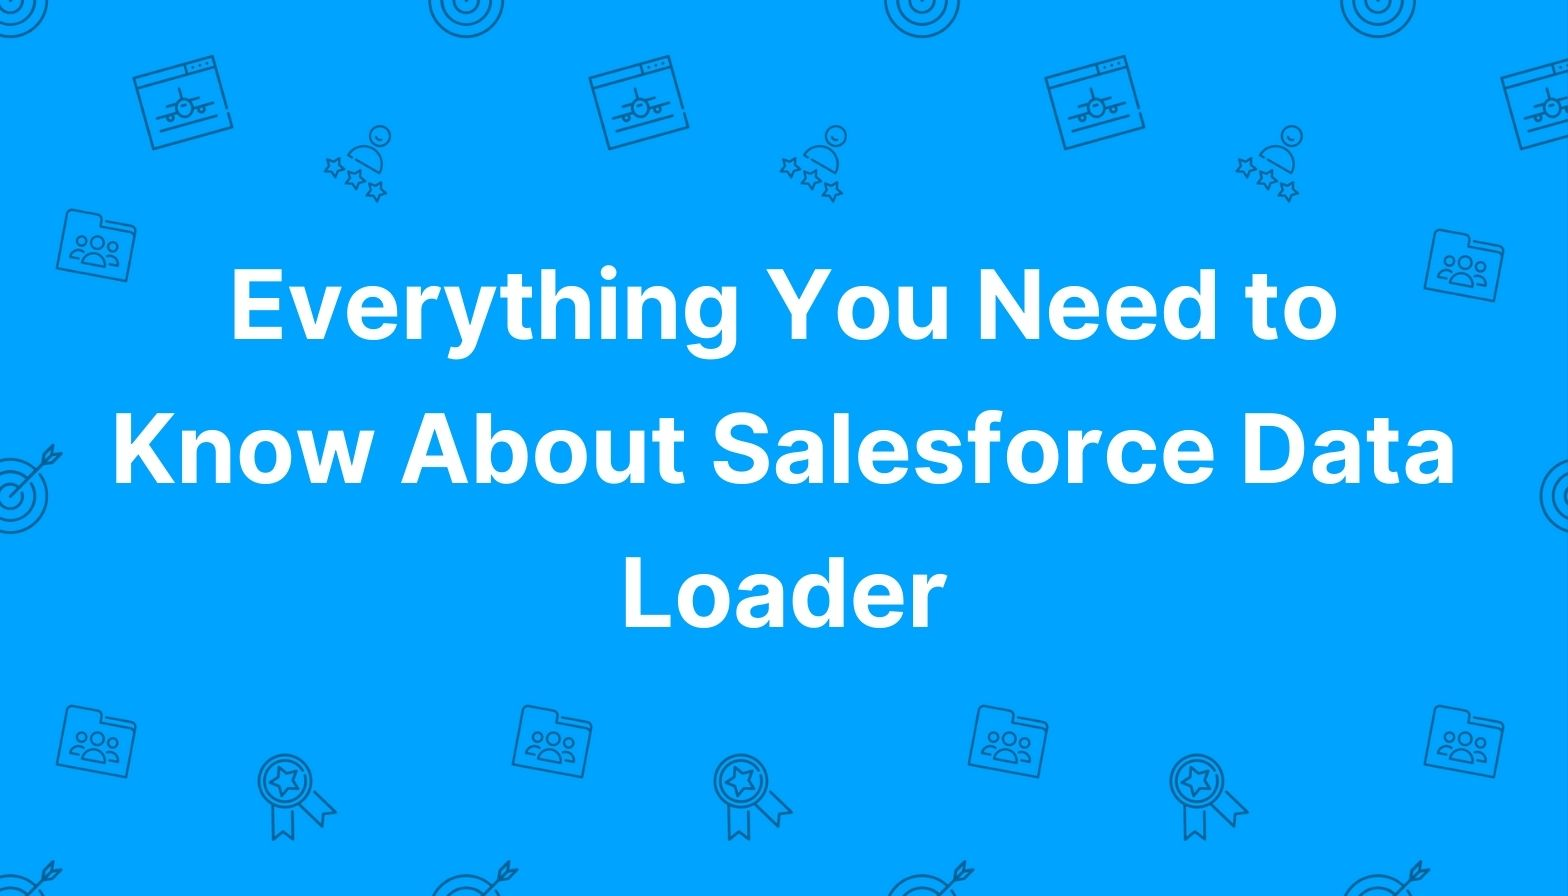 Everything You Need to Know About Salesforce Data Loader